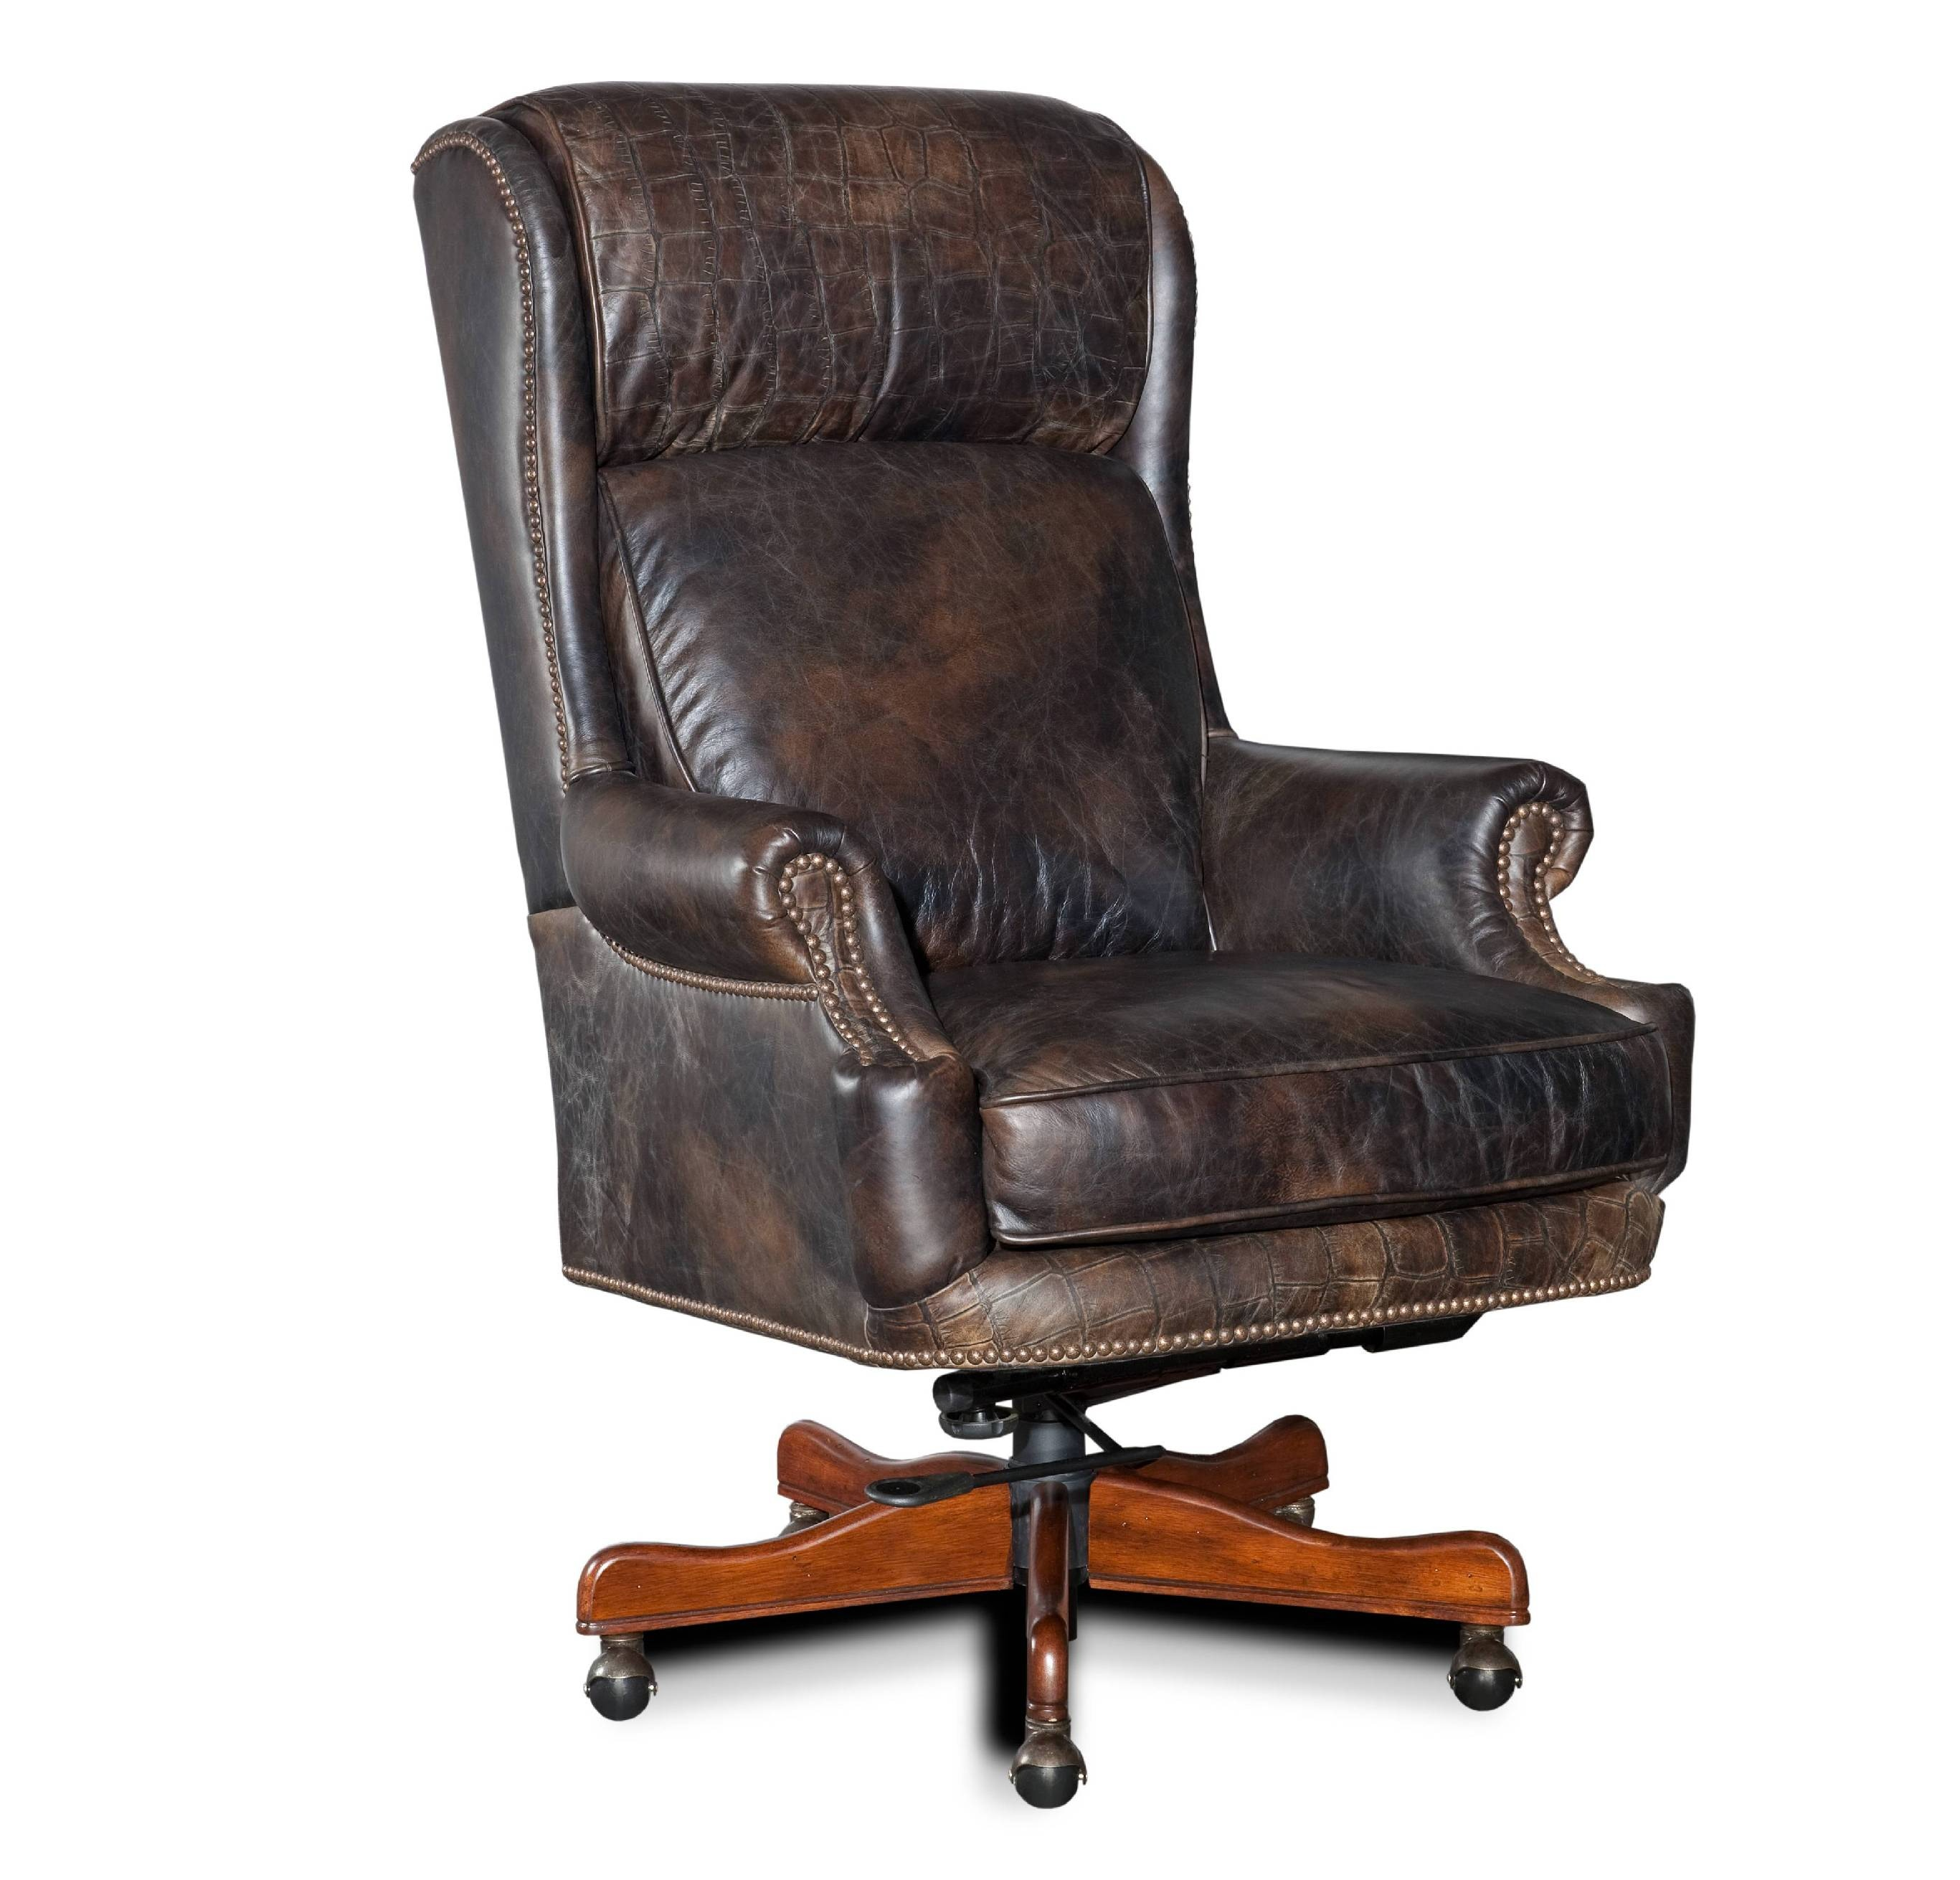 Old Saddle Fudge with Croc Accents Executive Swivel Tilt Chair ST378566  sc 1 st  Star Furniture & Old Saddle Fudge Desk Chair | Classic Luxury | Star Furniture